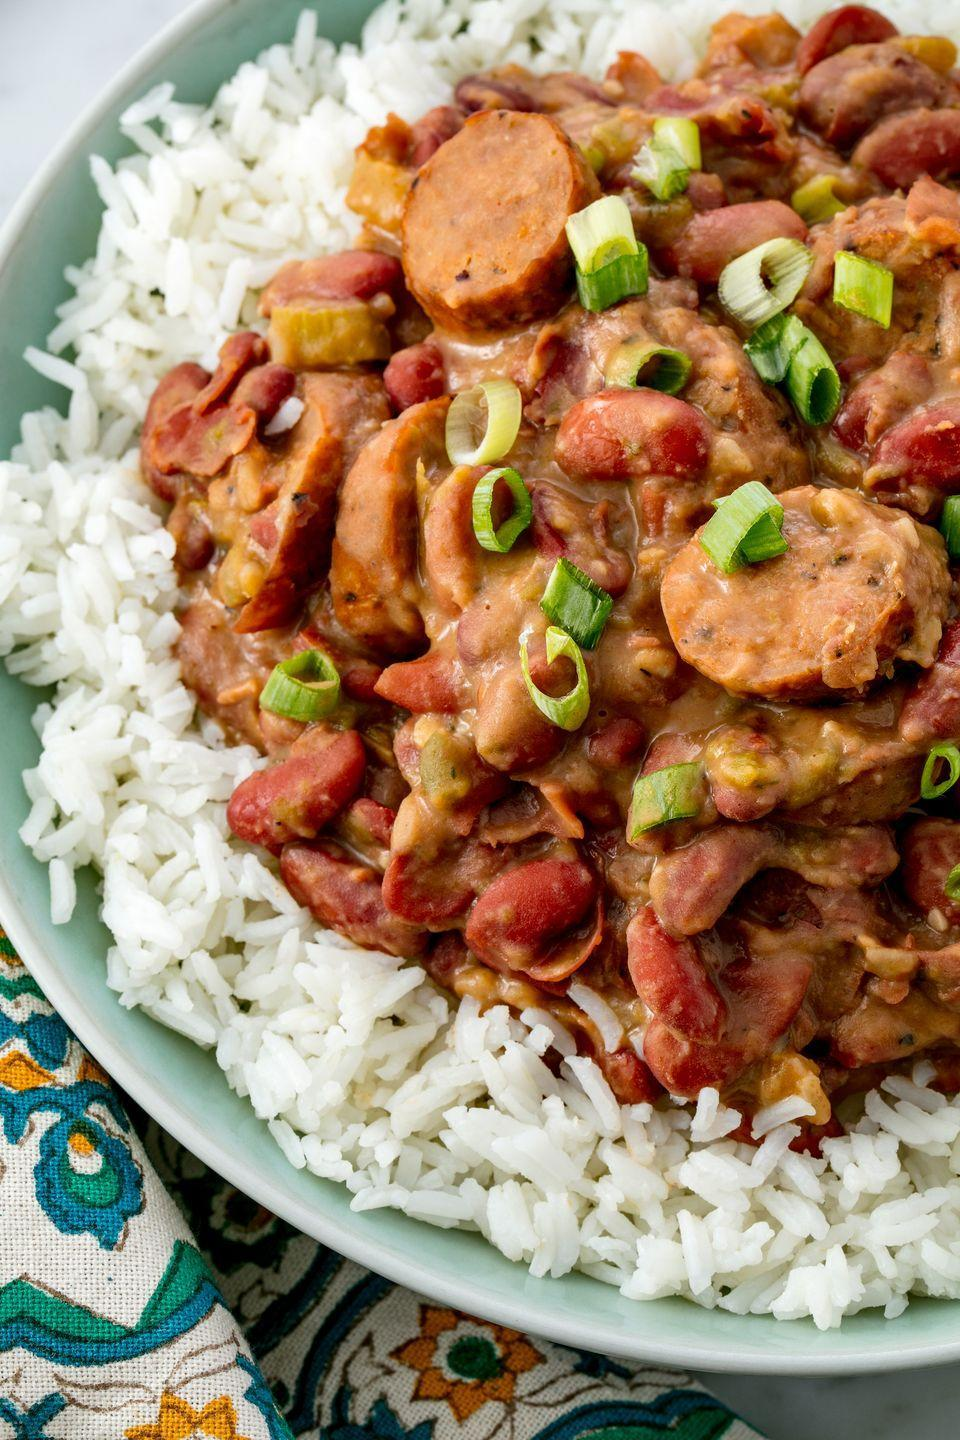 """<p>You don't have to be a ragin' cajun to enjoy these red beans.</p><p>Get the recipe from <a href=""""https://www.delish.com/cooking/recipe-ideas/recipes/a54954/easy-red-beans-and-rice-recipe/"""" rel=""""nofollow noopener"""" target=""""_blank"""" data-ylk=""""slk:Delish"""" class=""""link rapid-noclick-resp"""">Delish</a>.</p>"""